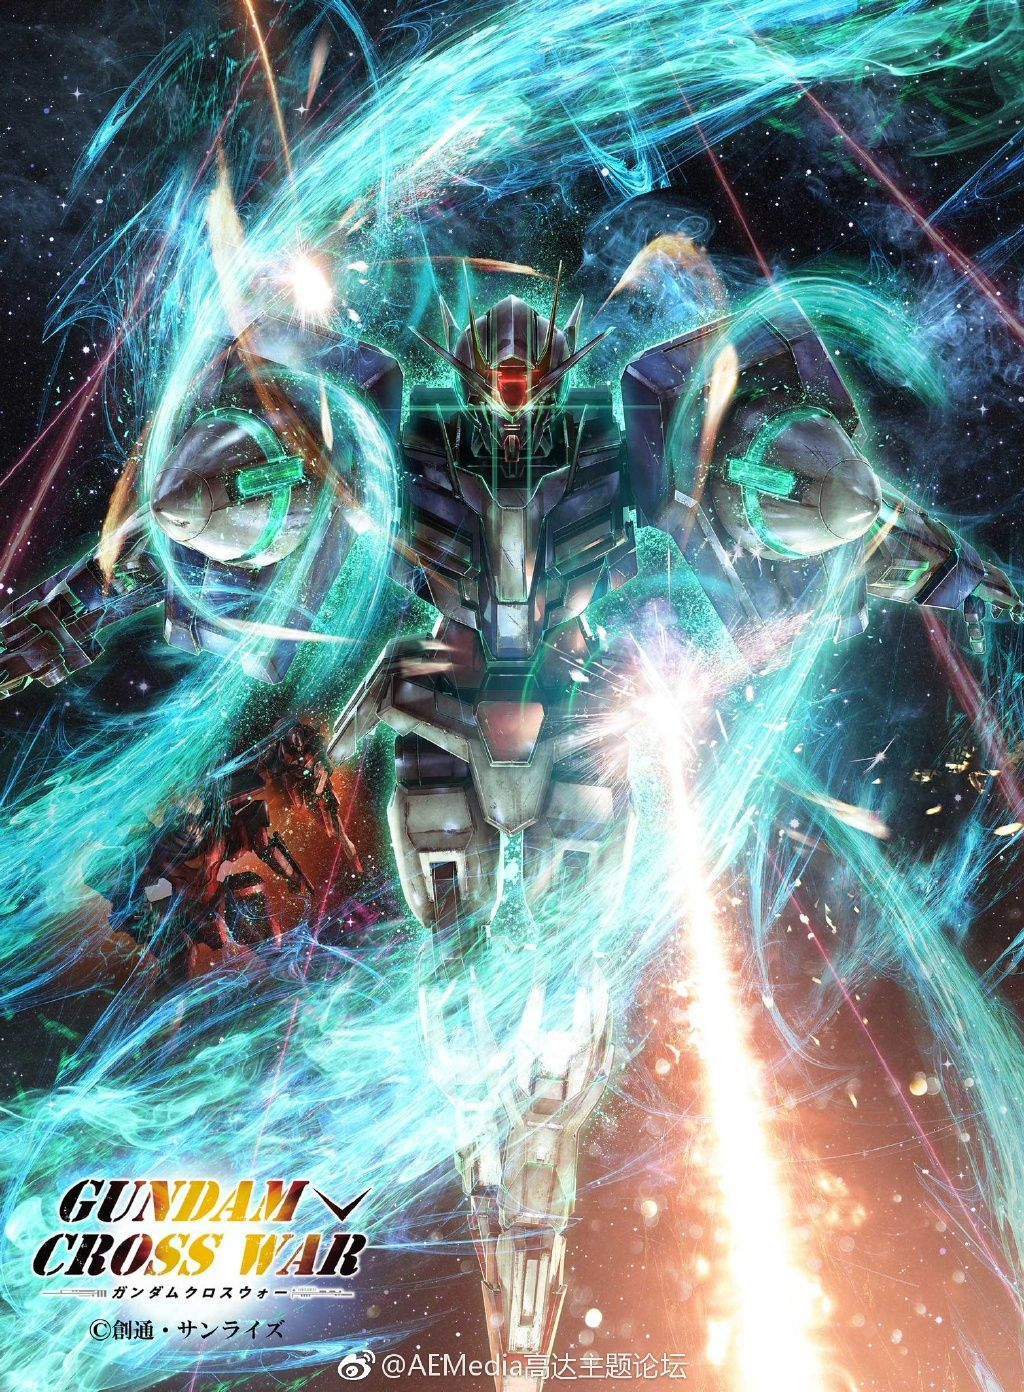 Gundam Cross War Wallpaper 283 29 Jpg 1 024 1 392ピクセル